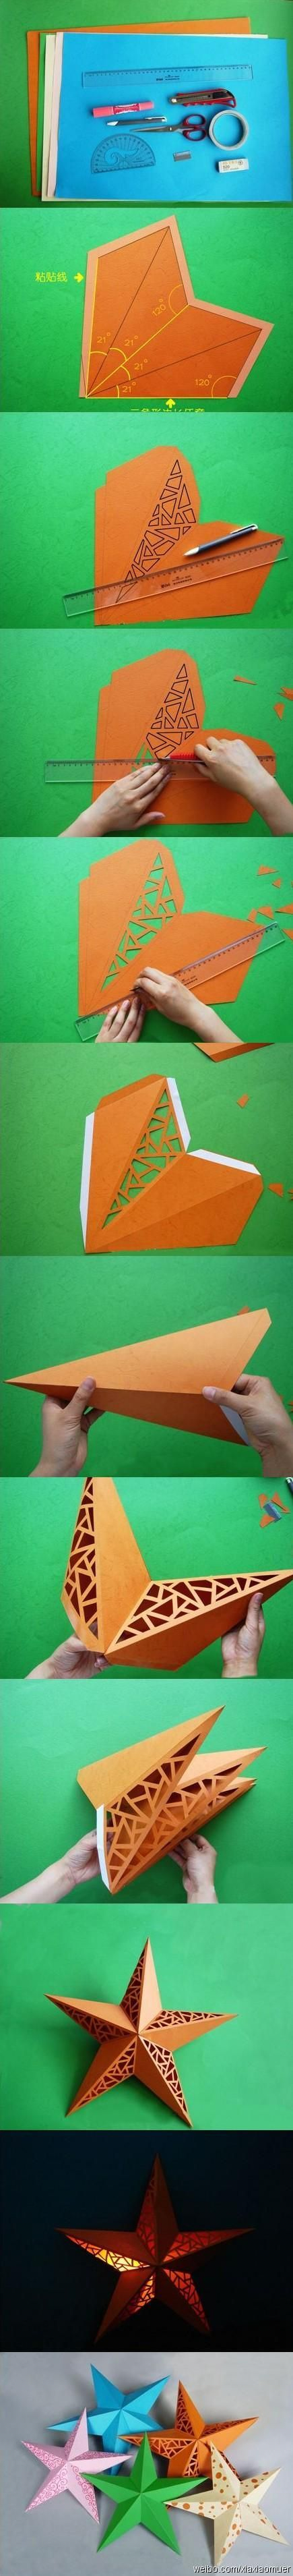 How to make a 3d star christmas decoration - Diy Star Lights Party Diy Craft Crafts Craft Ideas Instructions Easy Crafts Diy Ideas Diy Crafts Party Decor Easy Diy How To Home Crafts Party Ideas Diy